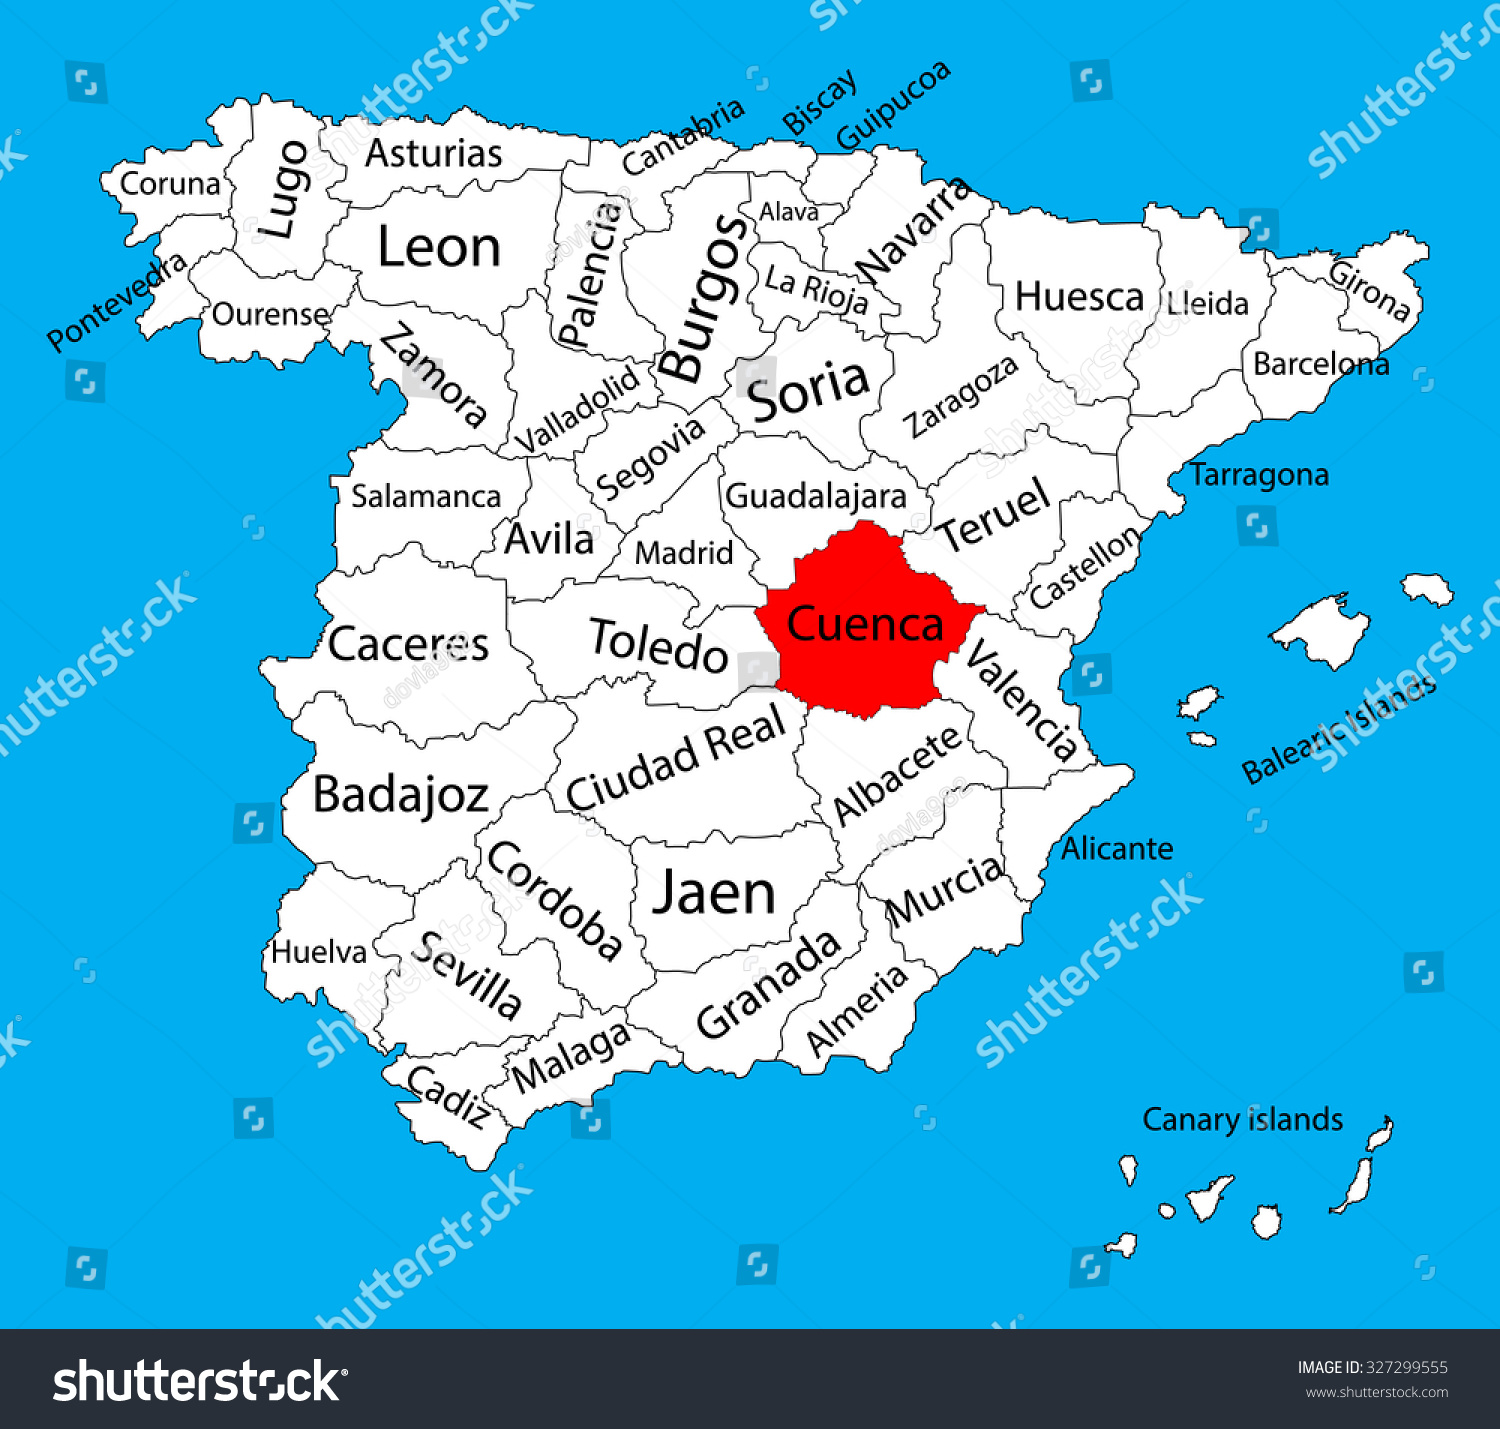 Cuenca map spain province vector map vectores en stock 327299555 cuenca map spain province vector map high detailed vector map of spain with separated gumiabroncs Choice Image